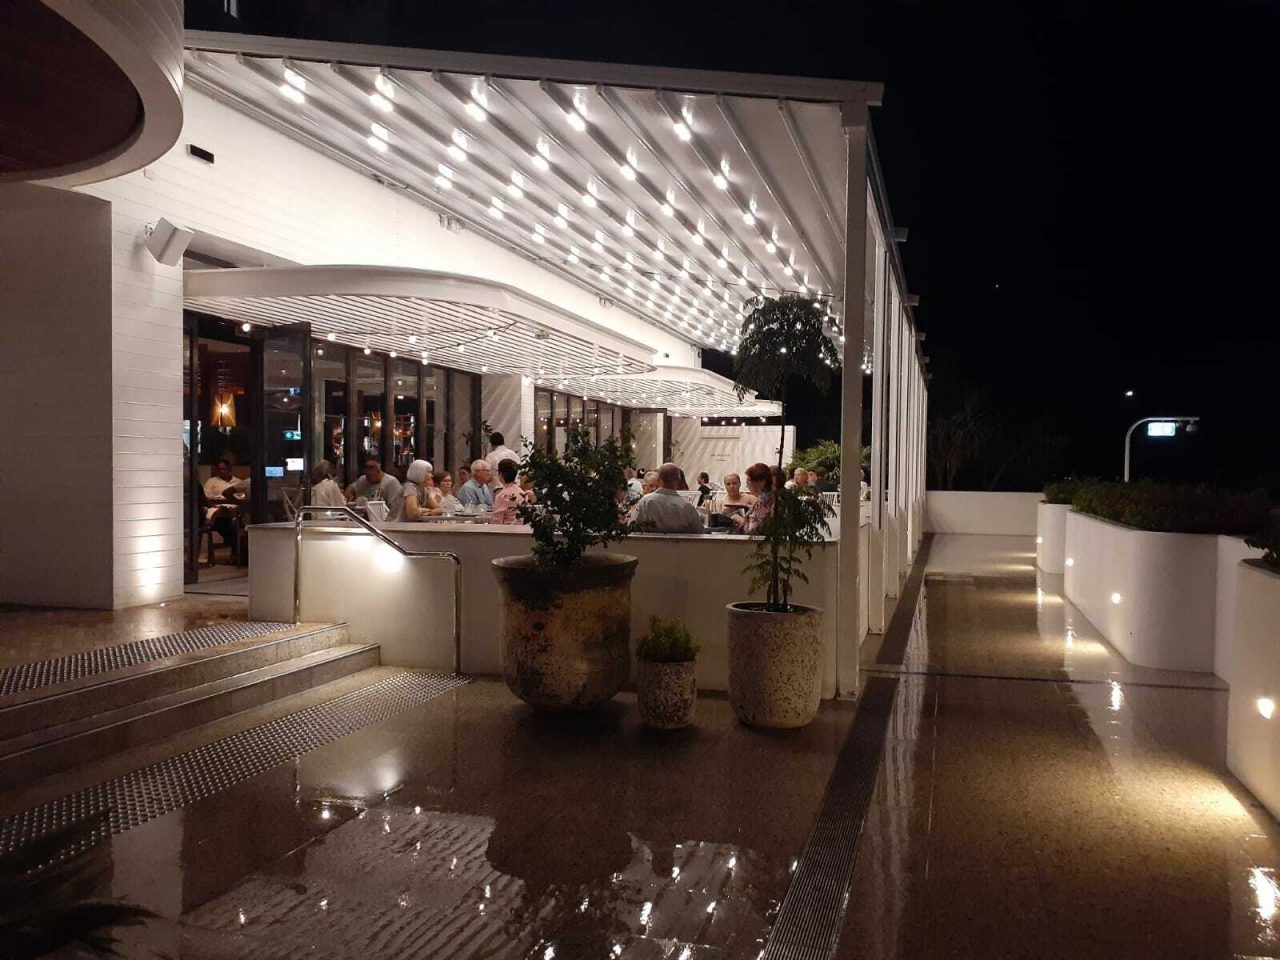 Commercial Awnings Motorised-Waterproof-Retractable-Louvre-Roof-System-Terrace-Pergola-LED-Lighting-Rooftop-Bar-Brisbane